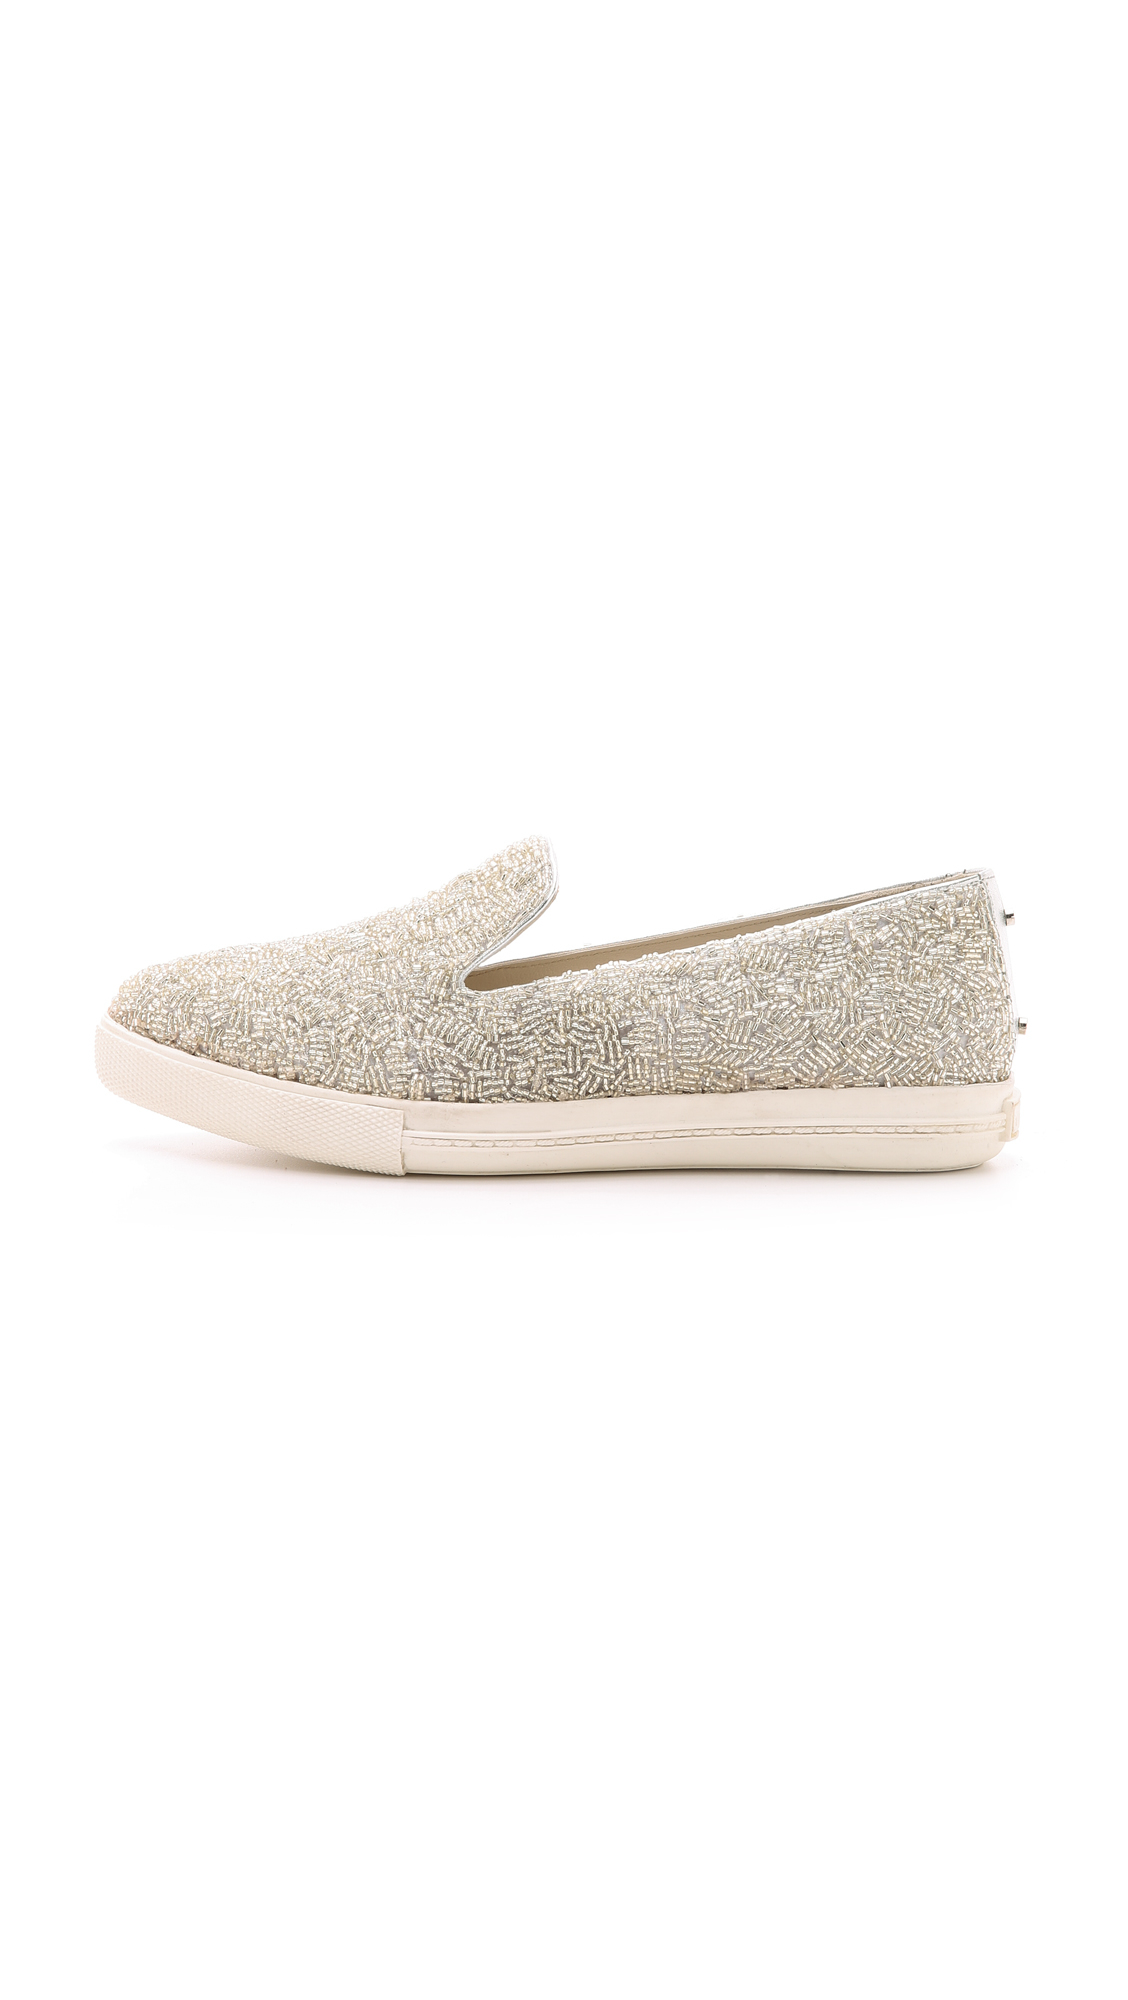 Alice olivia Rory Beaded Sneakers Silver in Metallic